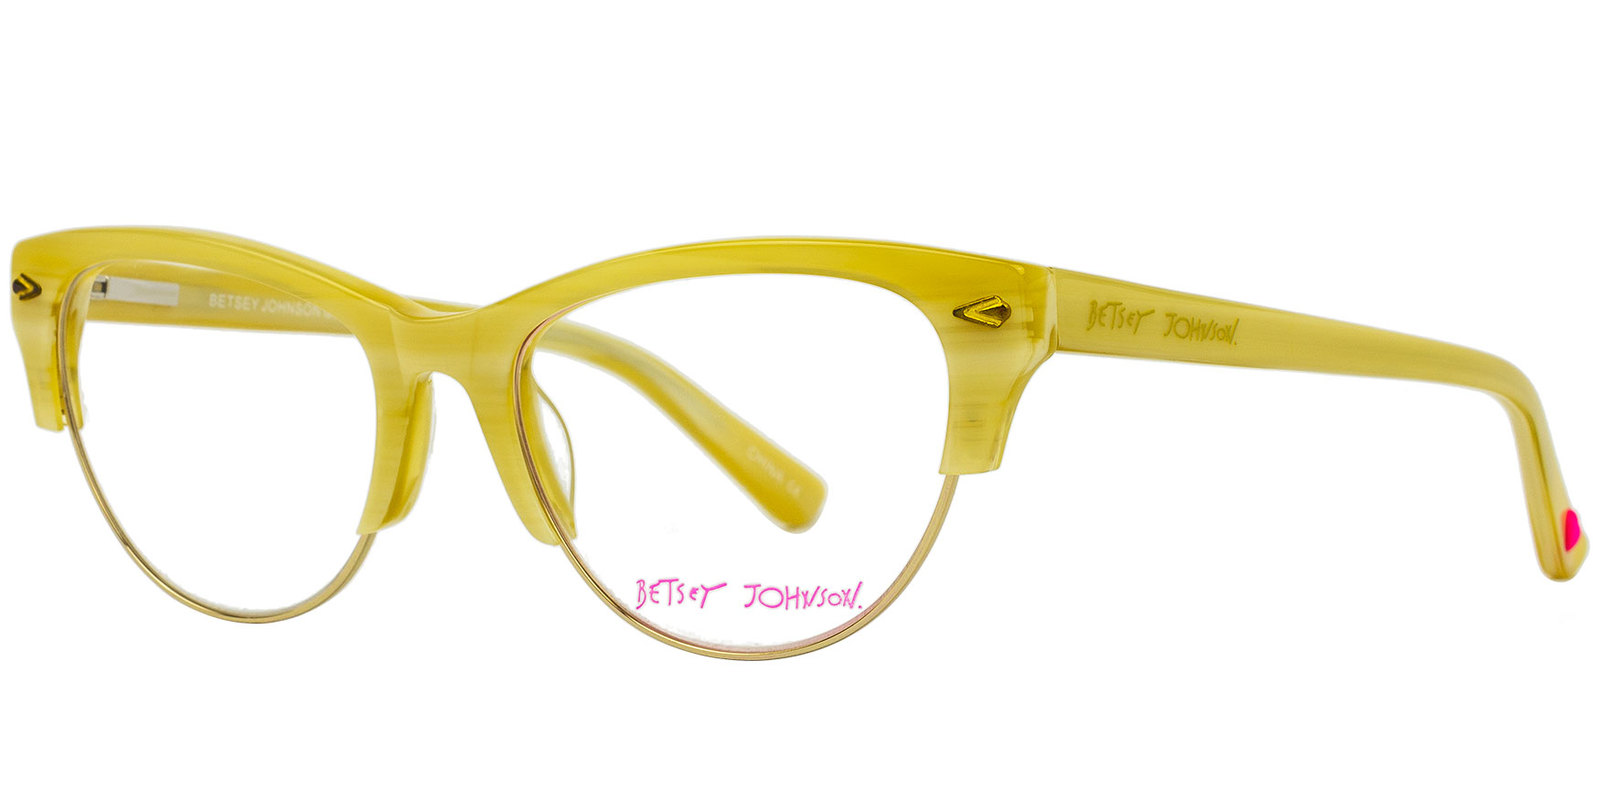 83890517546 Betsey Johnson Queen Bee Eyeglasses in Ivory and similar items